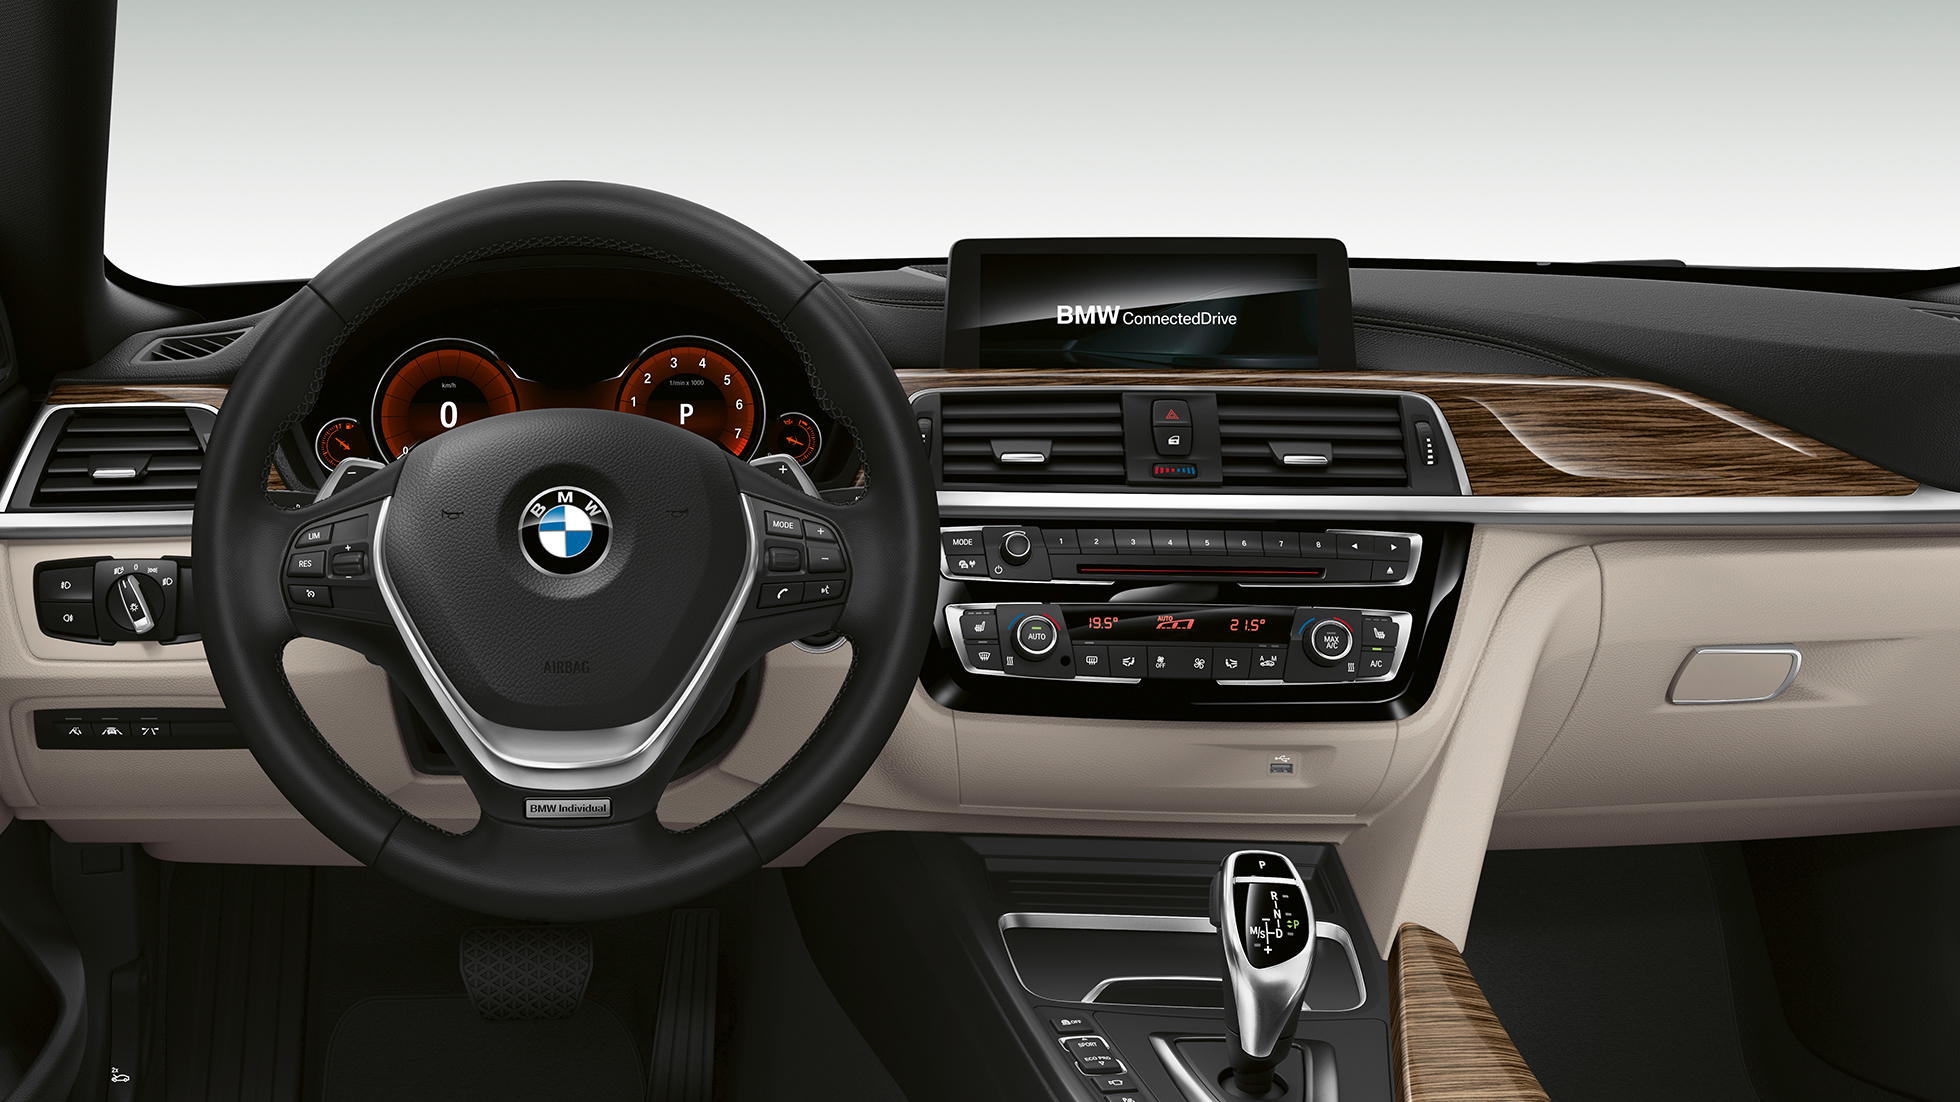 BMW 4 Série Gran Coupé, Model Luxury Line cockpit